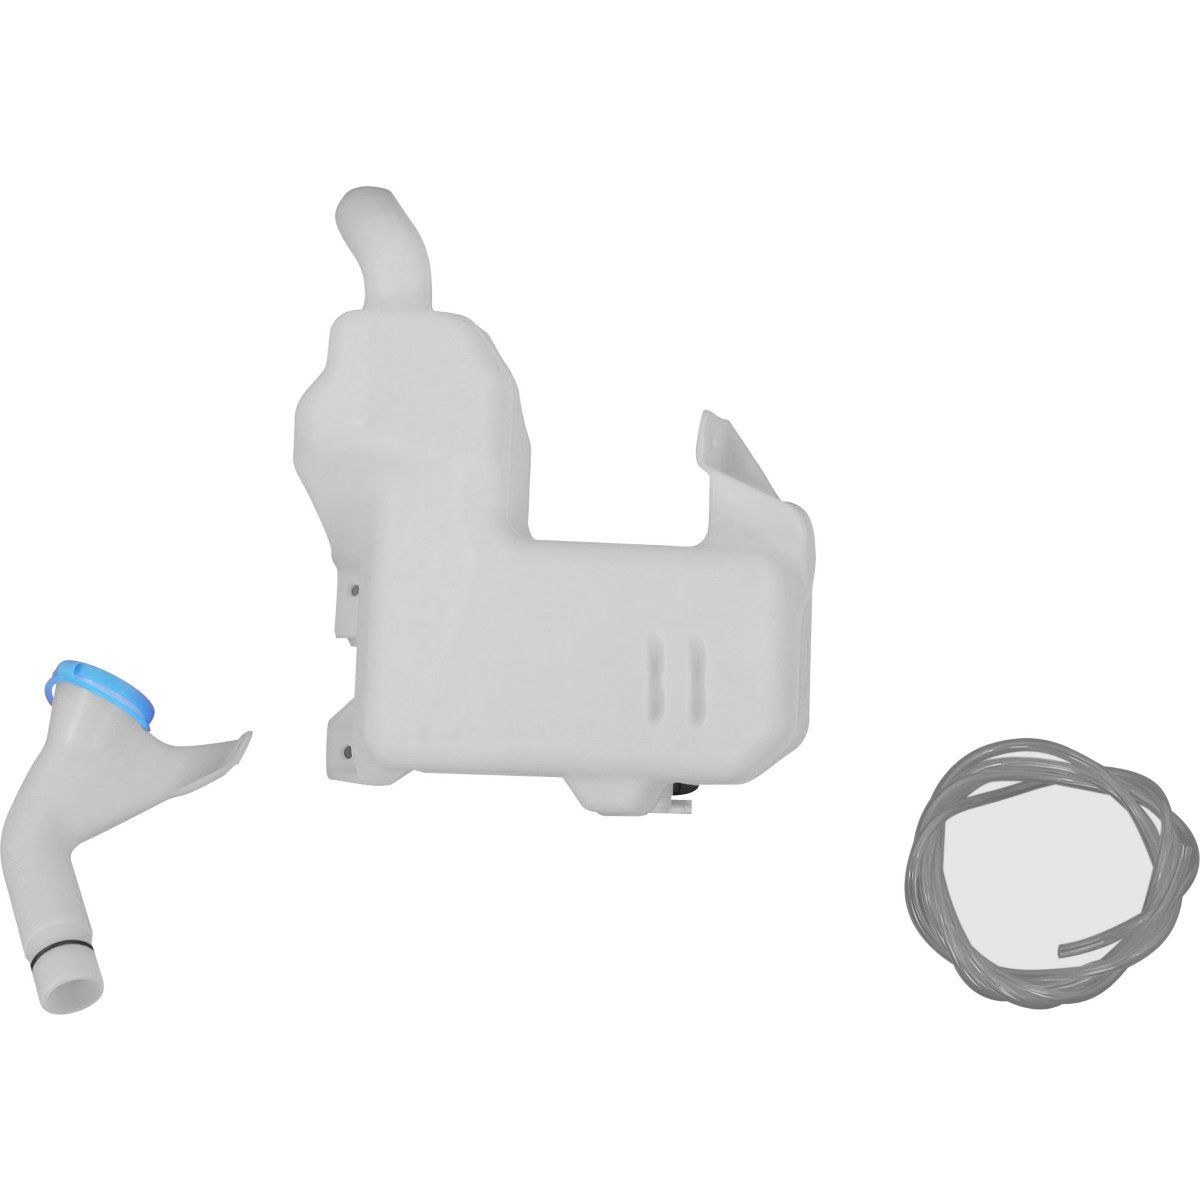 Washer Reservoir For 2009-2013 Acura TSX With Pump